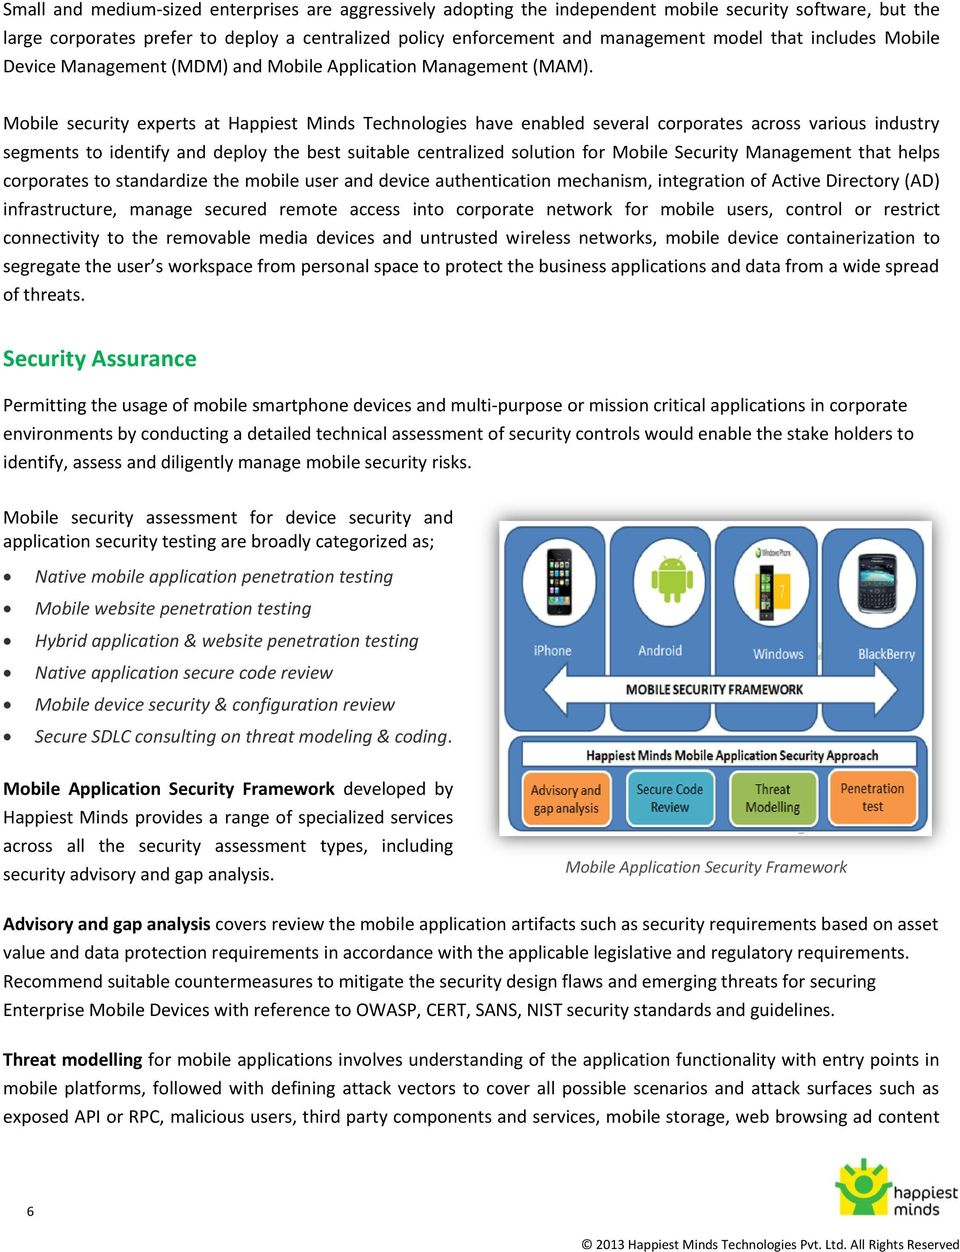 Mobile security experts at Happiest Minds Technologies have enabled several corporates across various industry segments to identify and deploy the best suitable centralized solution for Mobile